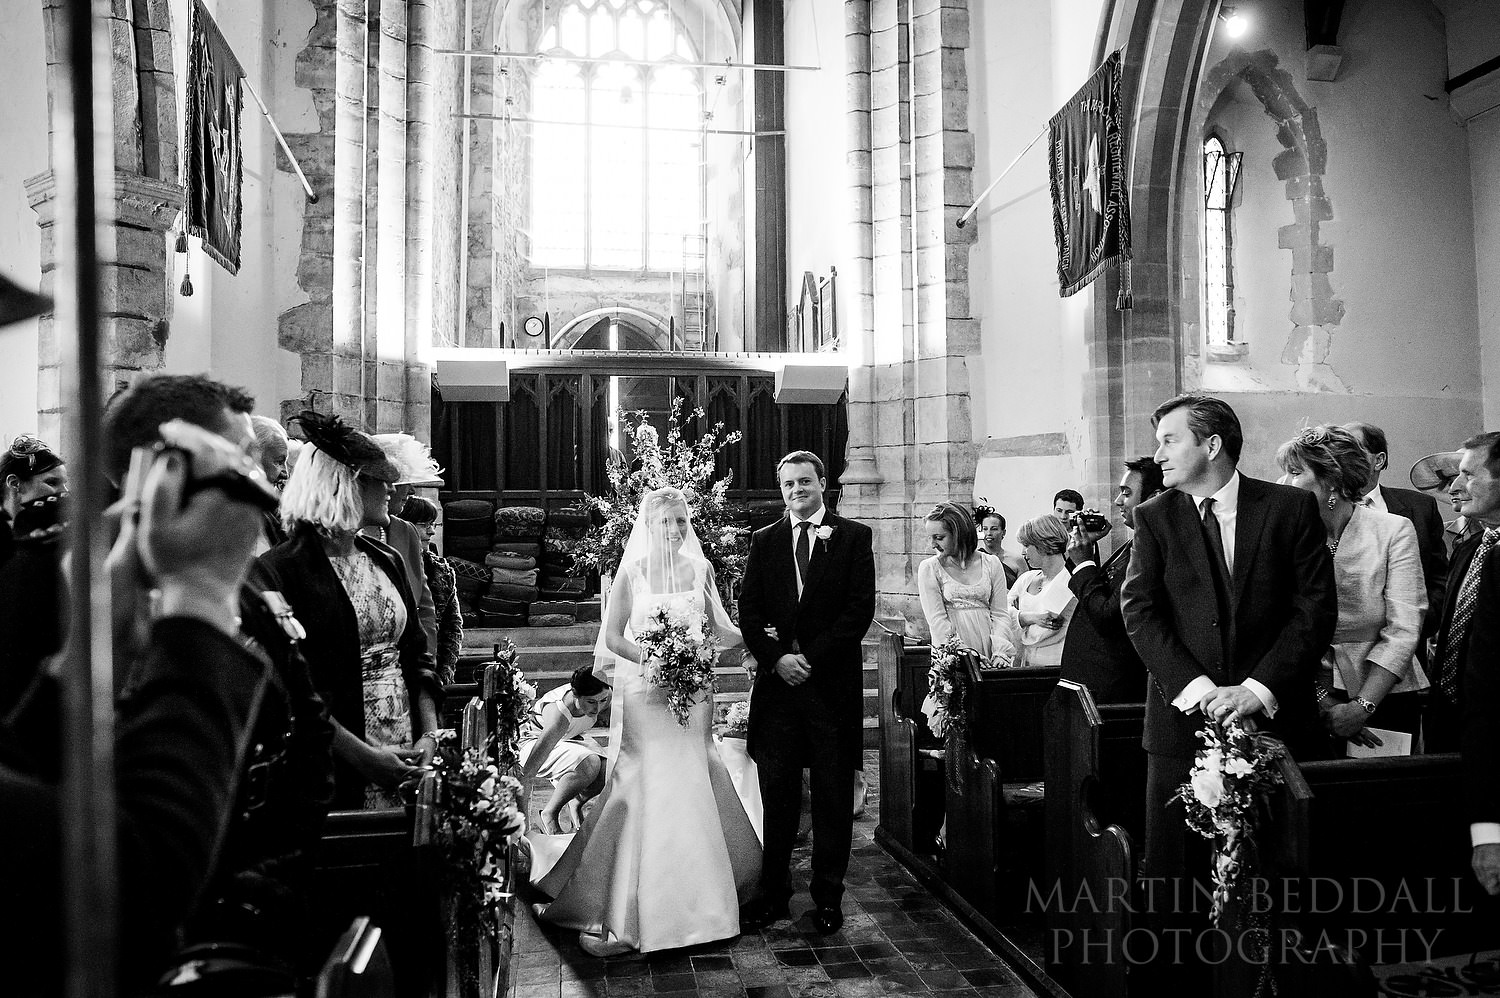 Bride in the church aisle with her brother